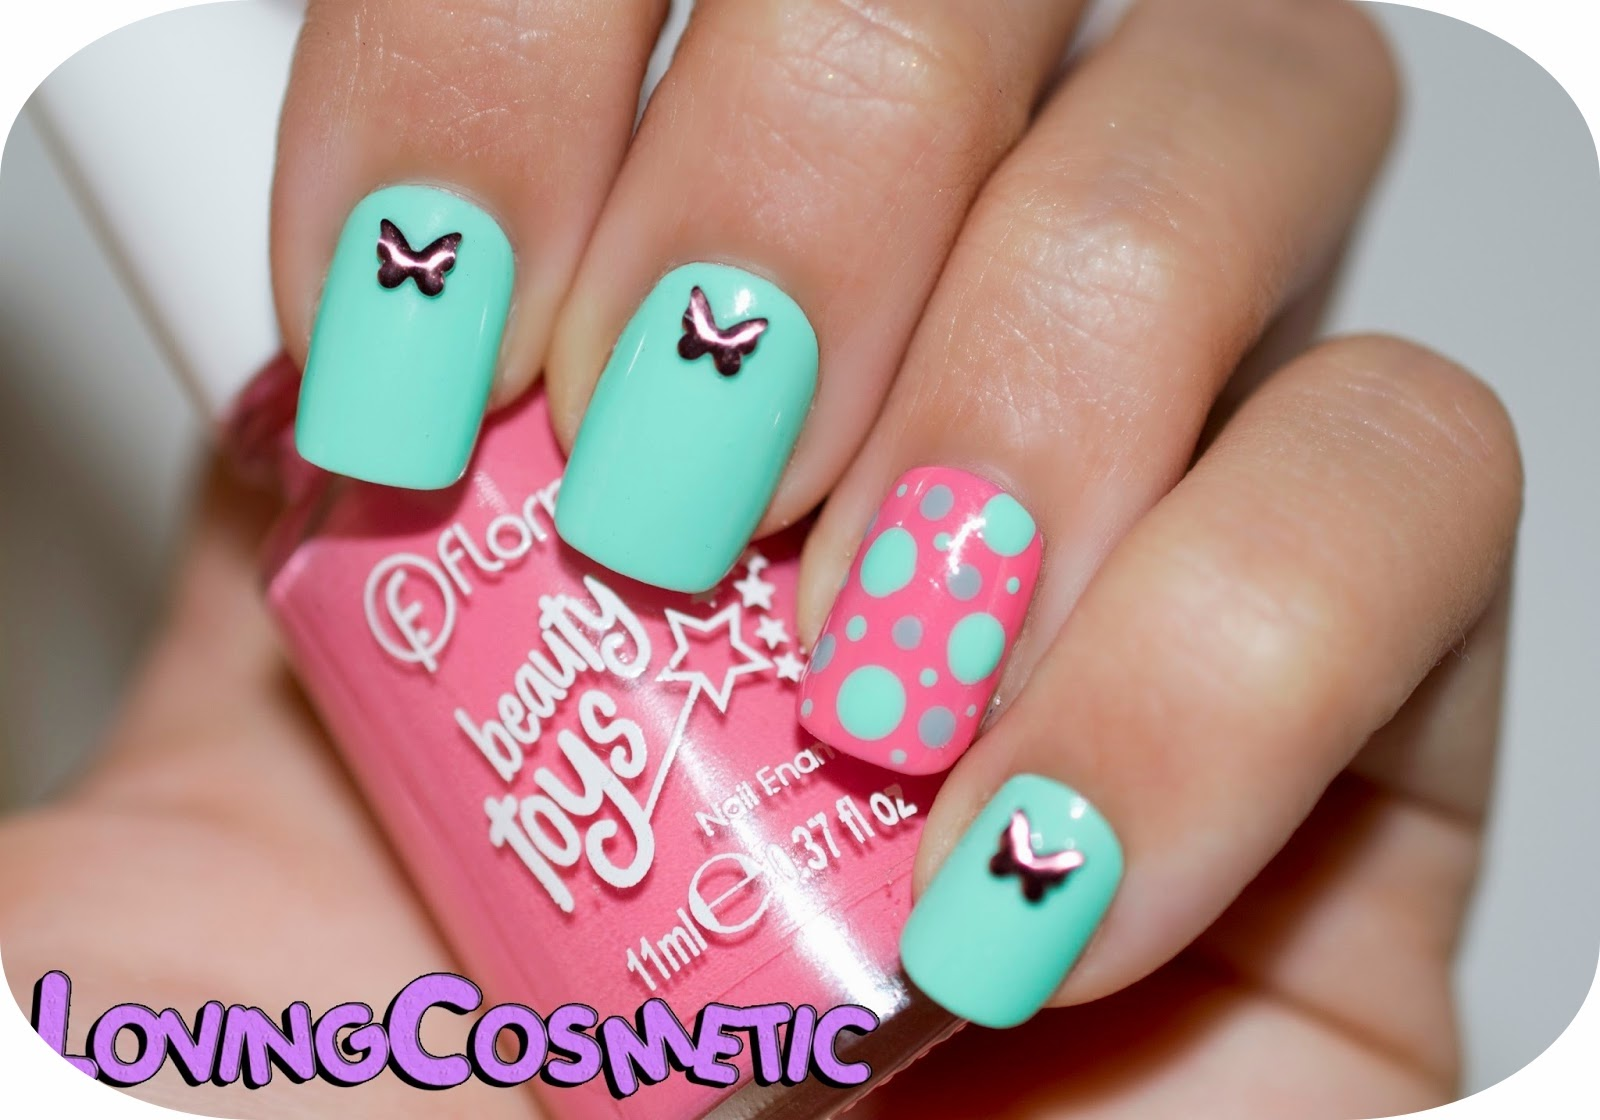 Mariposas y puntos Nail Art butterfly and dots bornprettystore easy flormar beautytoys